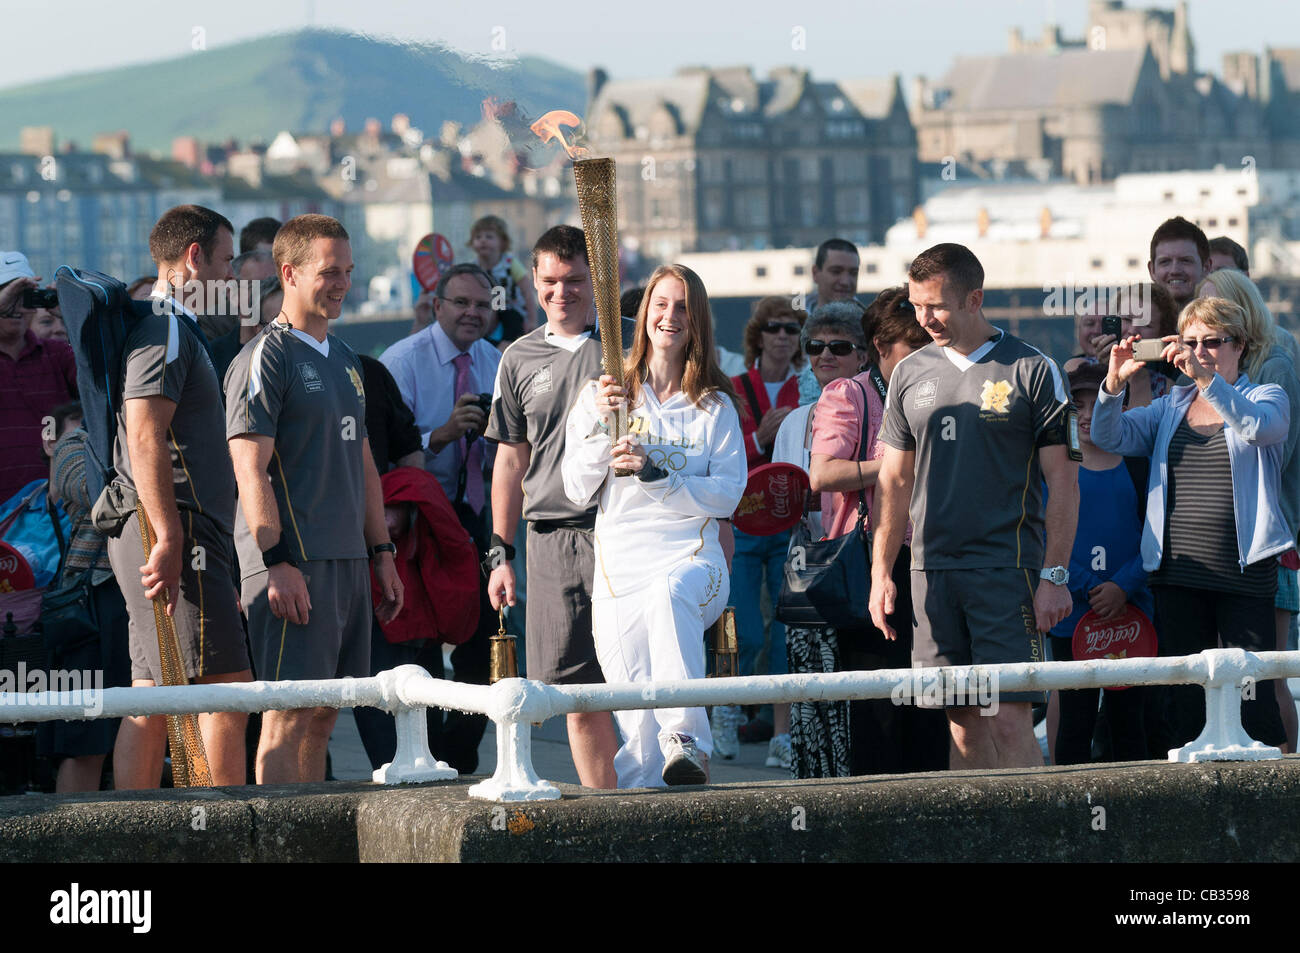 On day 10 of the Olympic torch relay through the United Kingdom, local school pupil CARWEN RICHARDS carries the - Stock Image